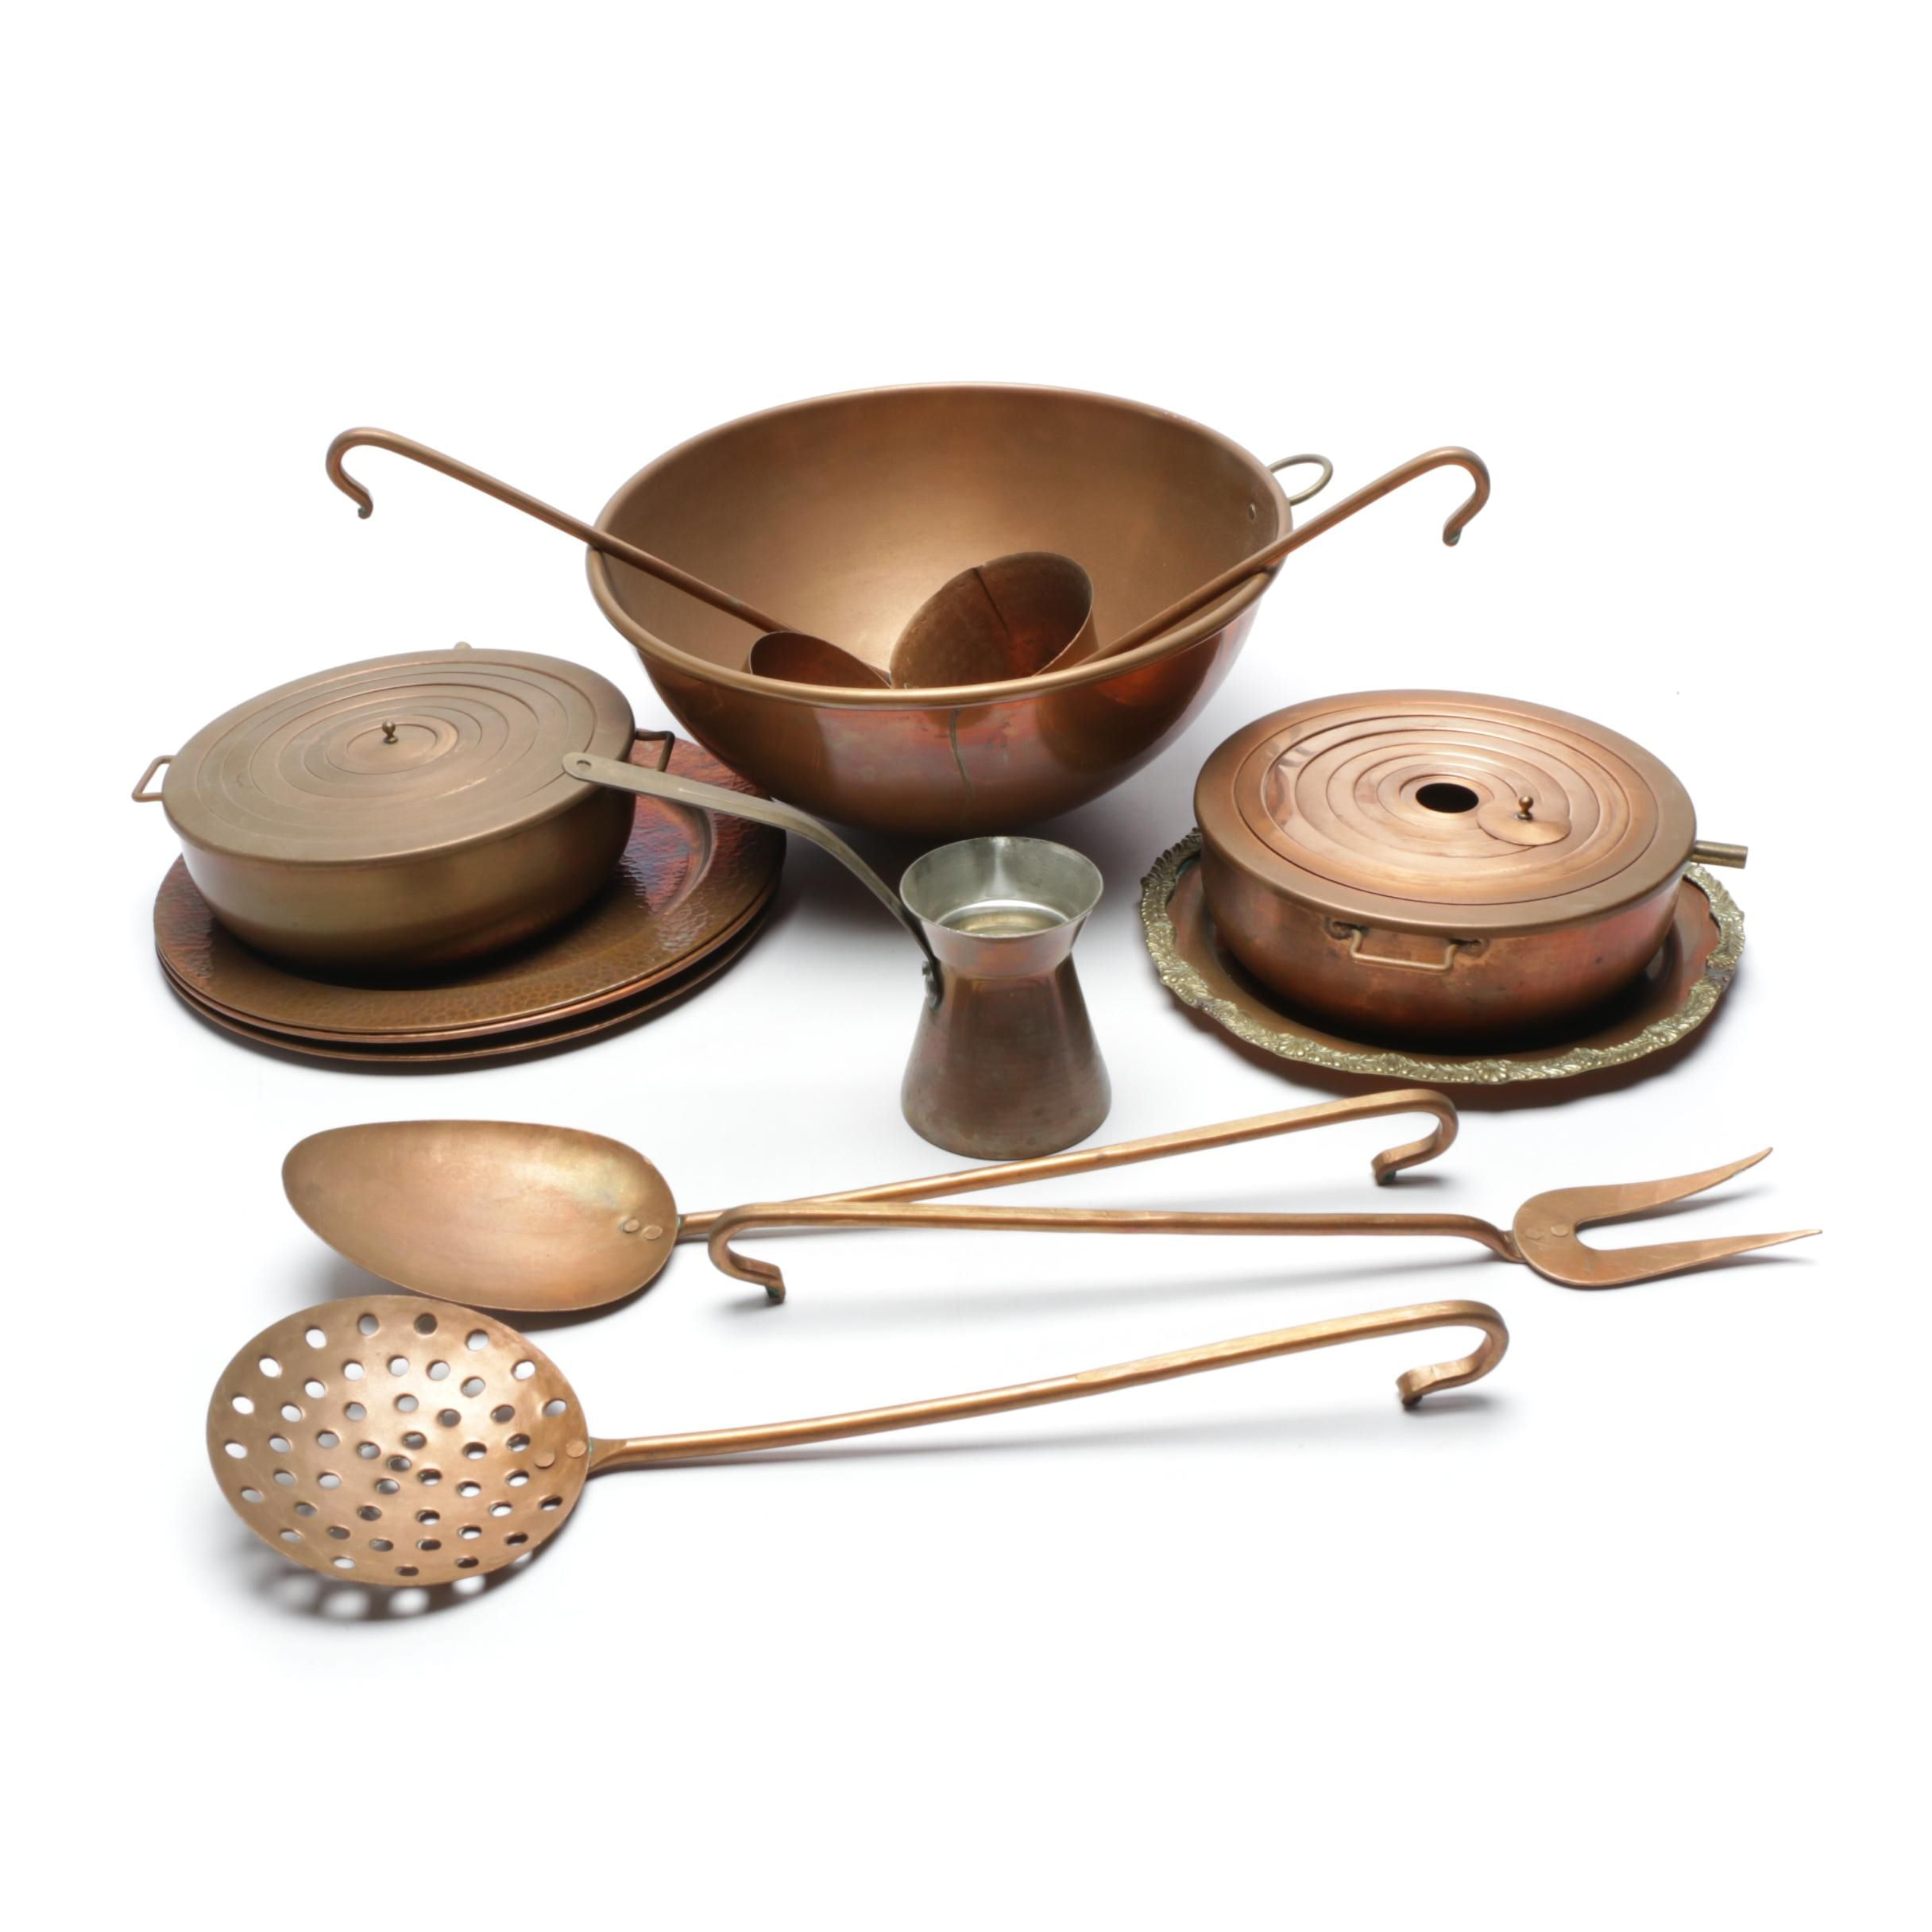 Assortment of Copper Cookware and Tableware